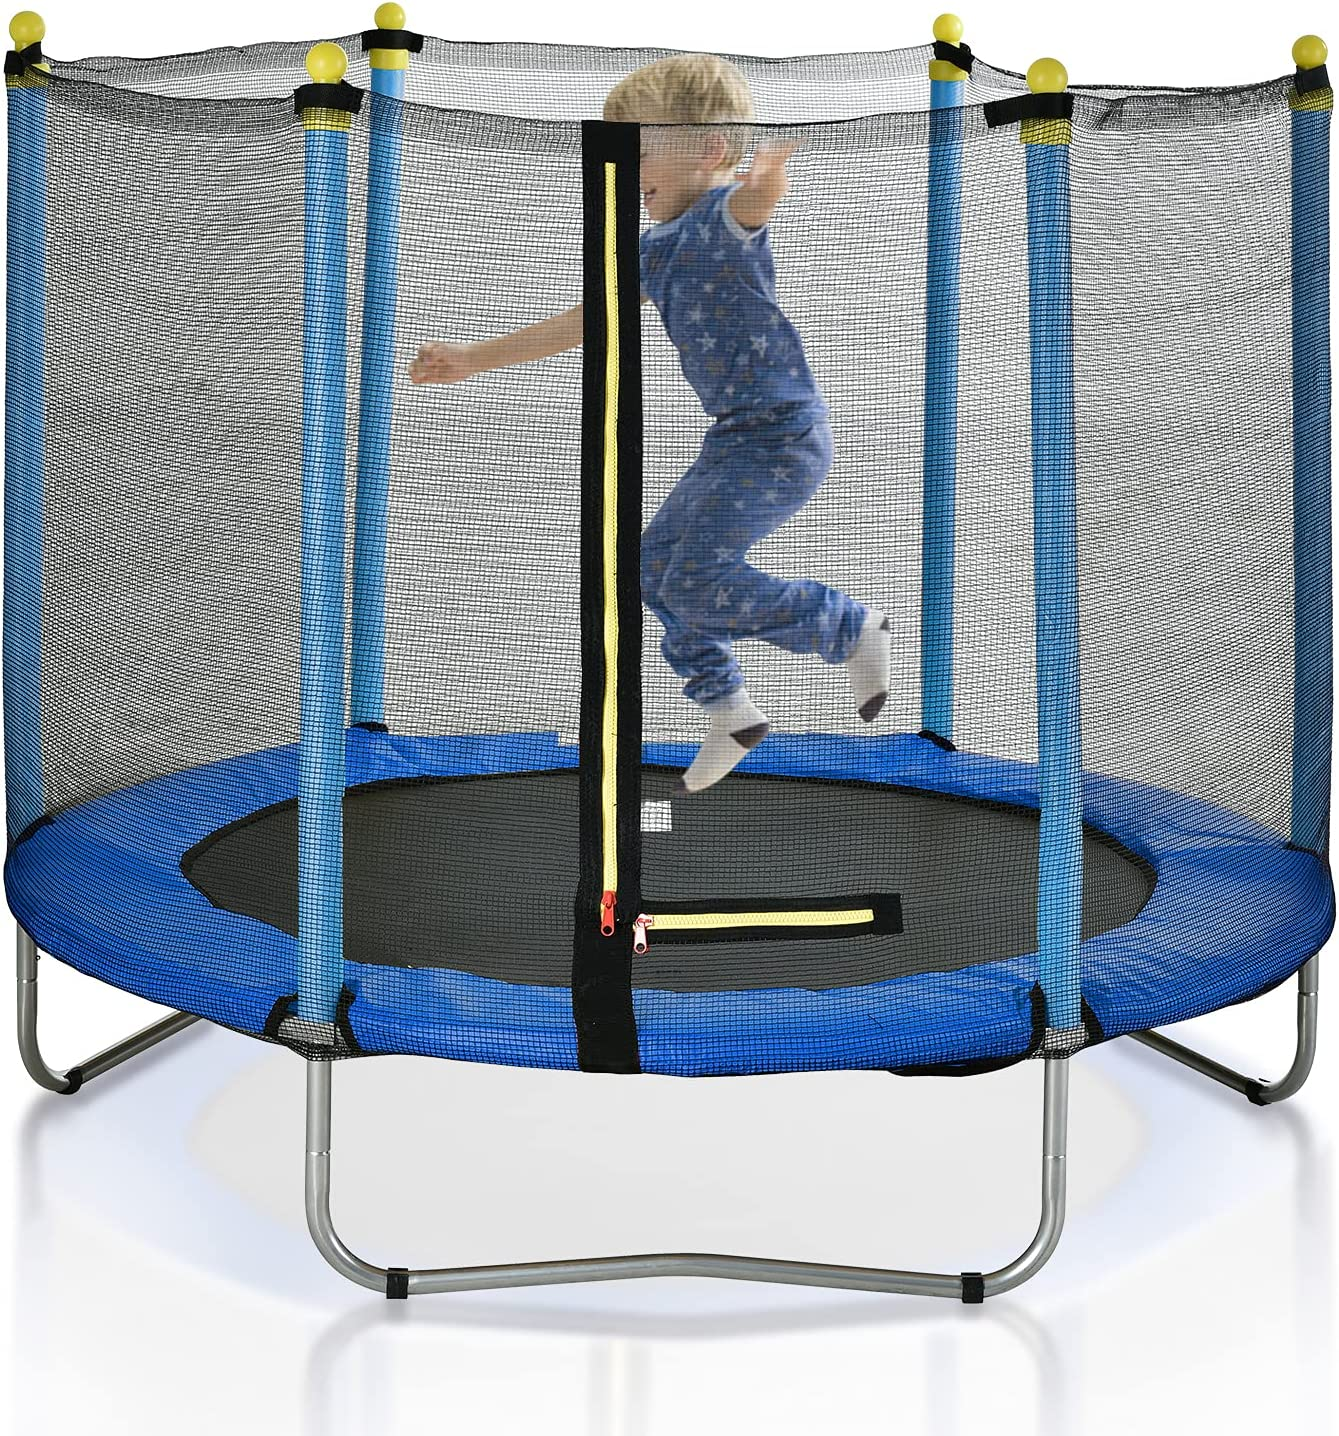 60-inch Max 48% OFF Trampoline for Children with Kids Super special price Enclos